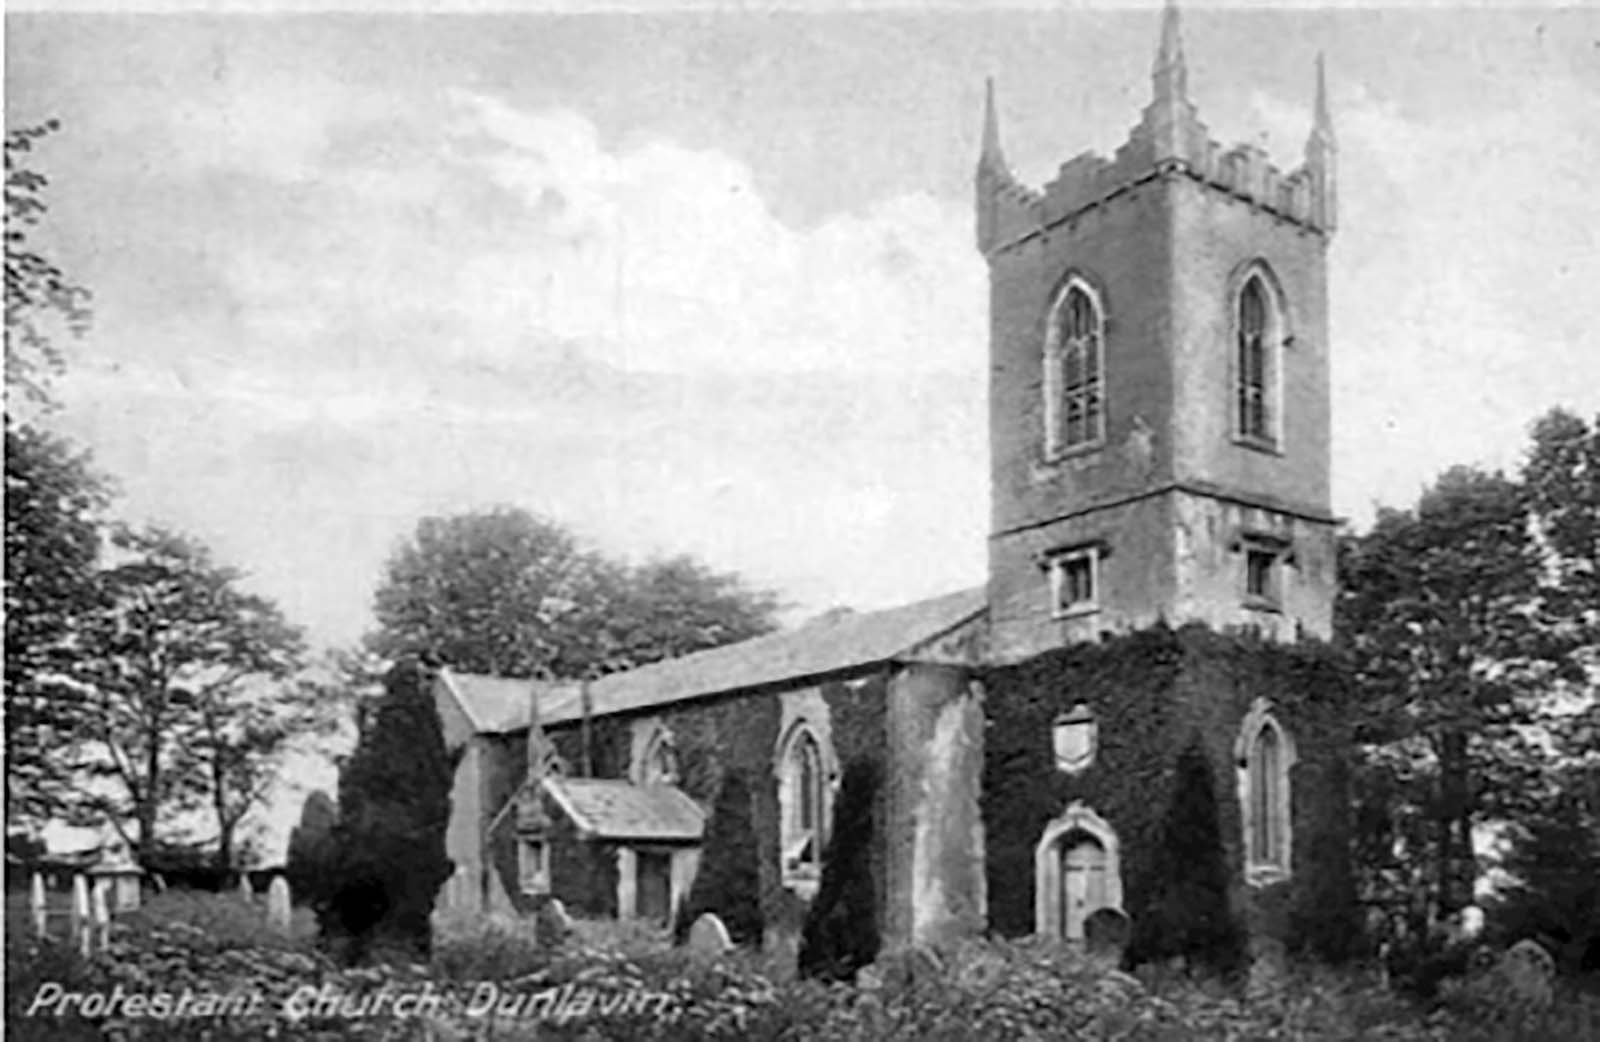 Parish Church of St. Nicholas (Church of Ireland), Dunlavin, Co. Wicklow